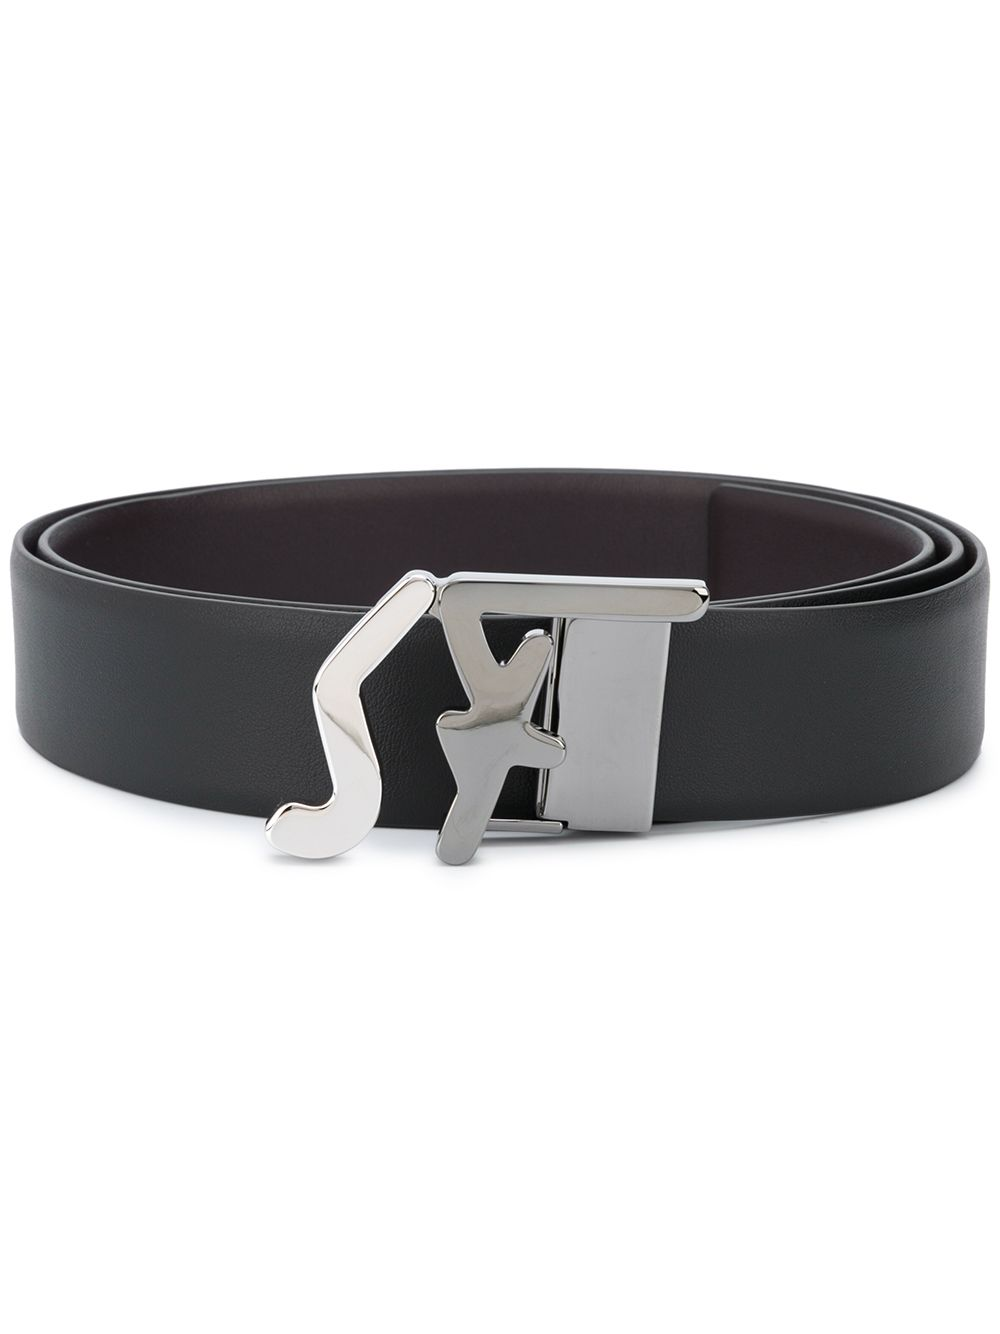 SALVATORE FERRAGAMO SF Logo Belt Black